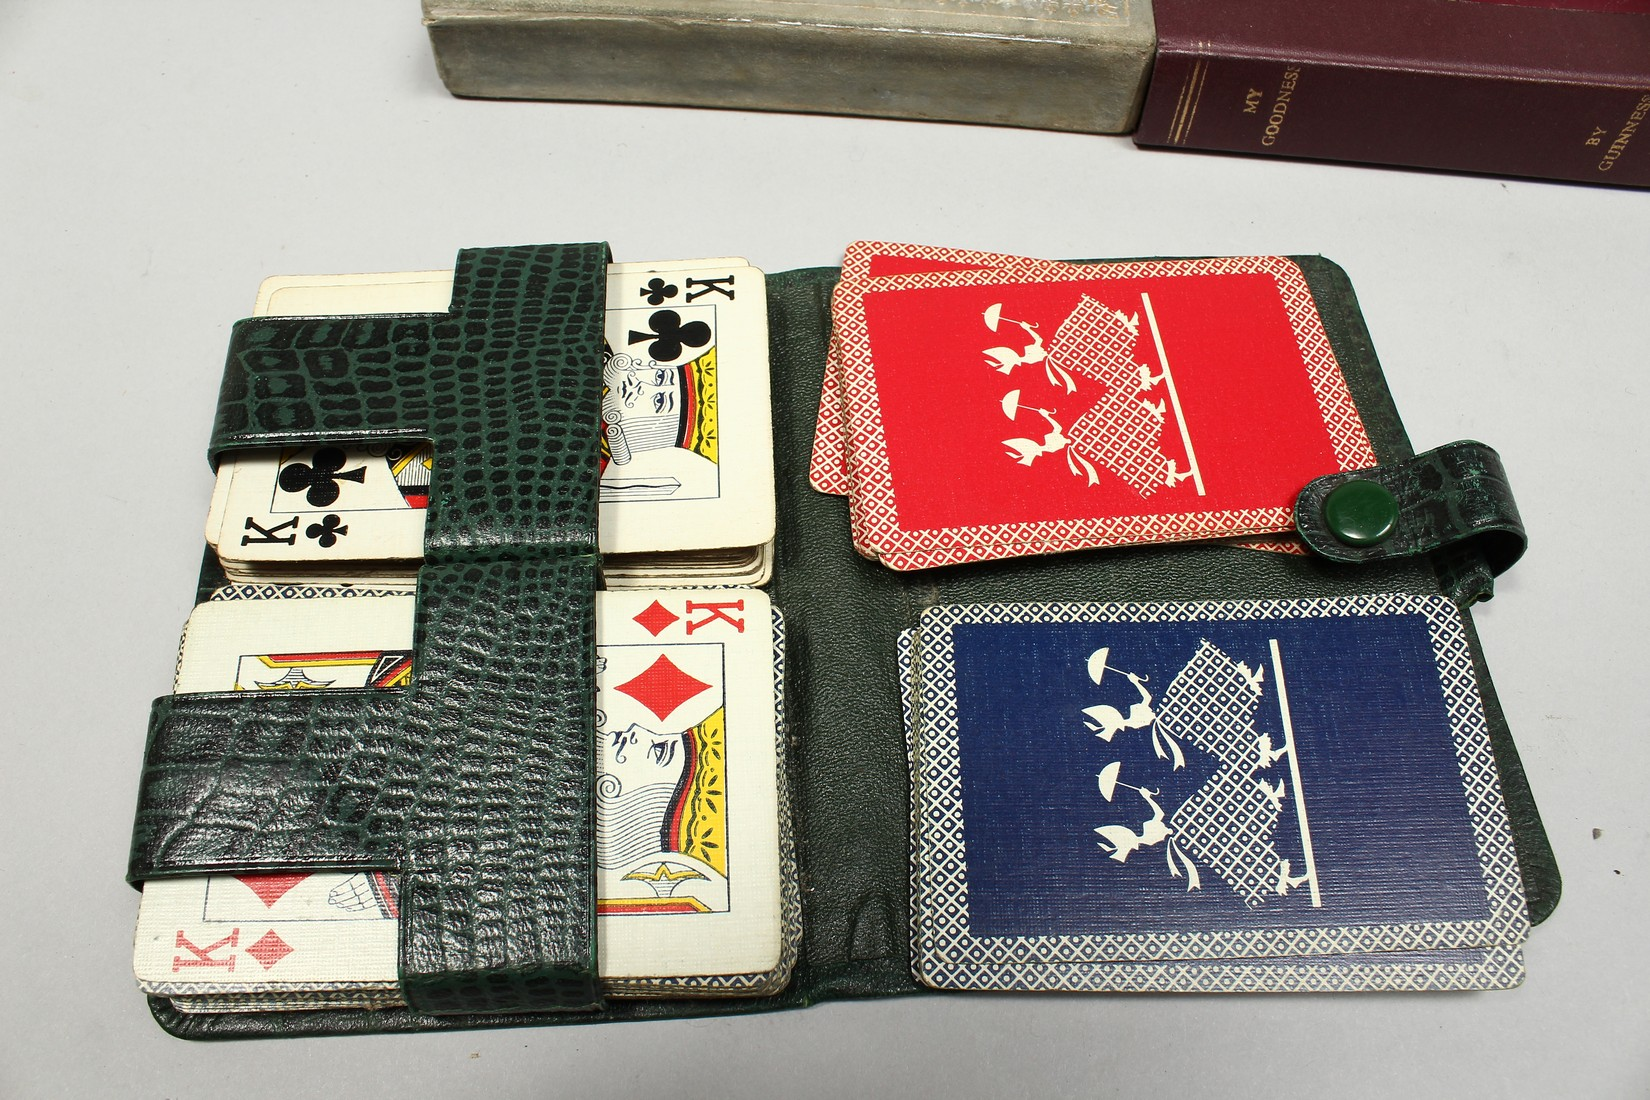 A COLLECTION OF VARIOUS PLAYING CARDS. - Image 3 of 16